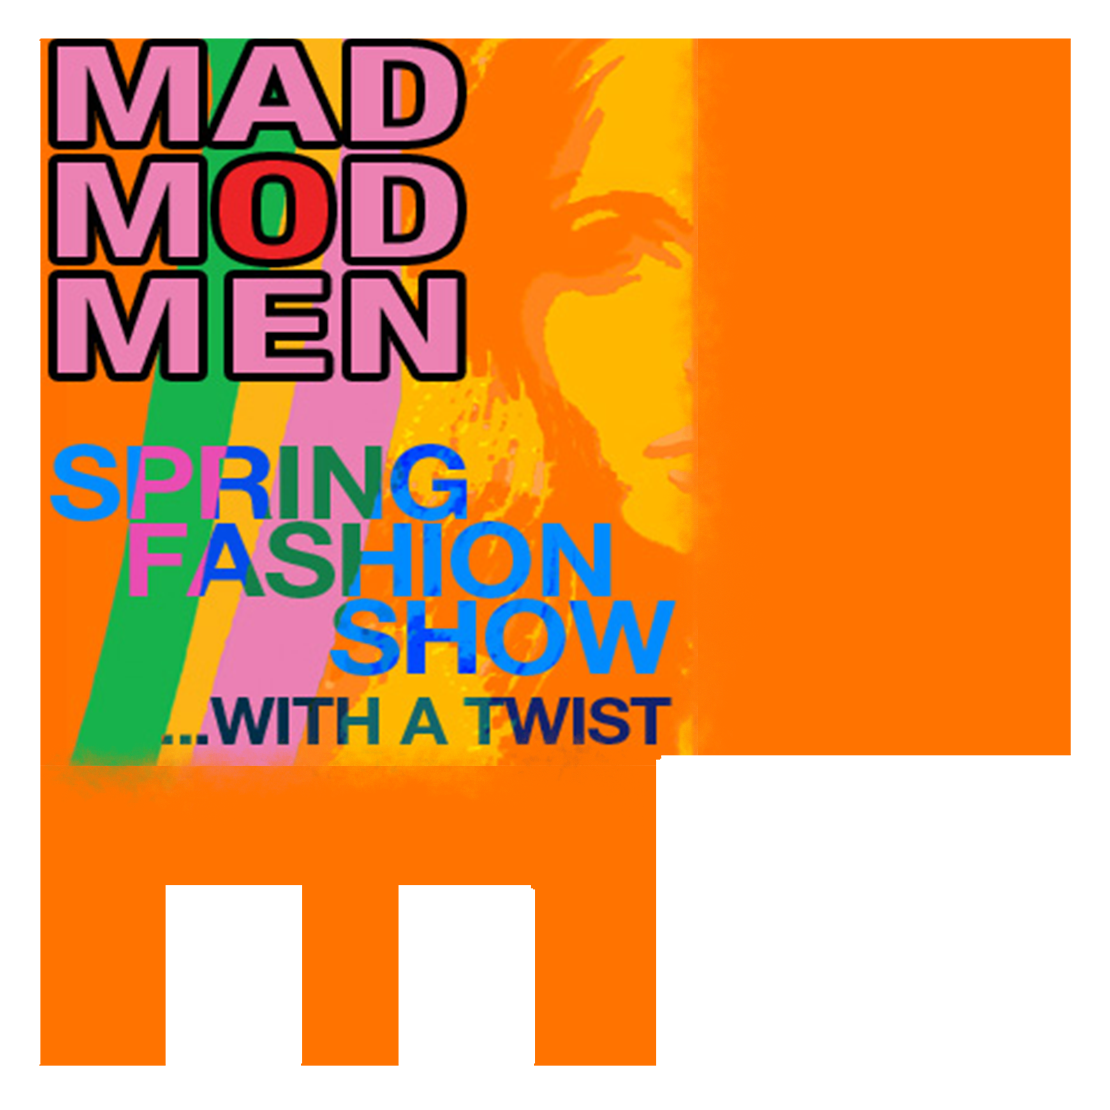 MAD MOD MEN  in the photo.